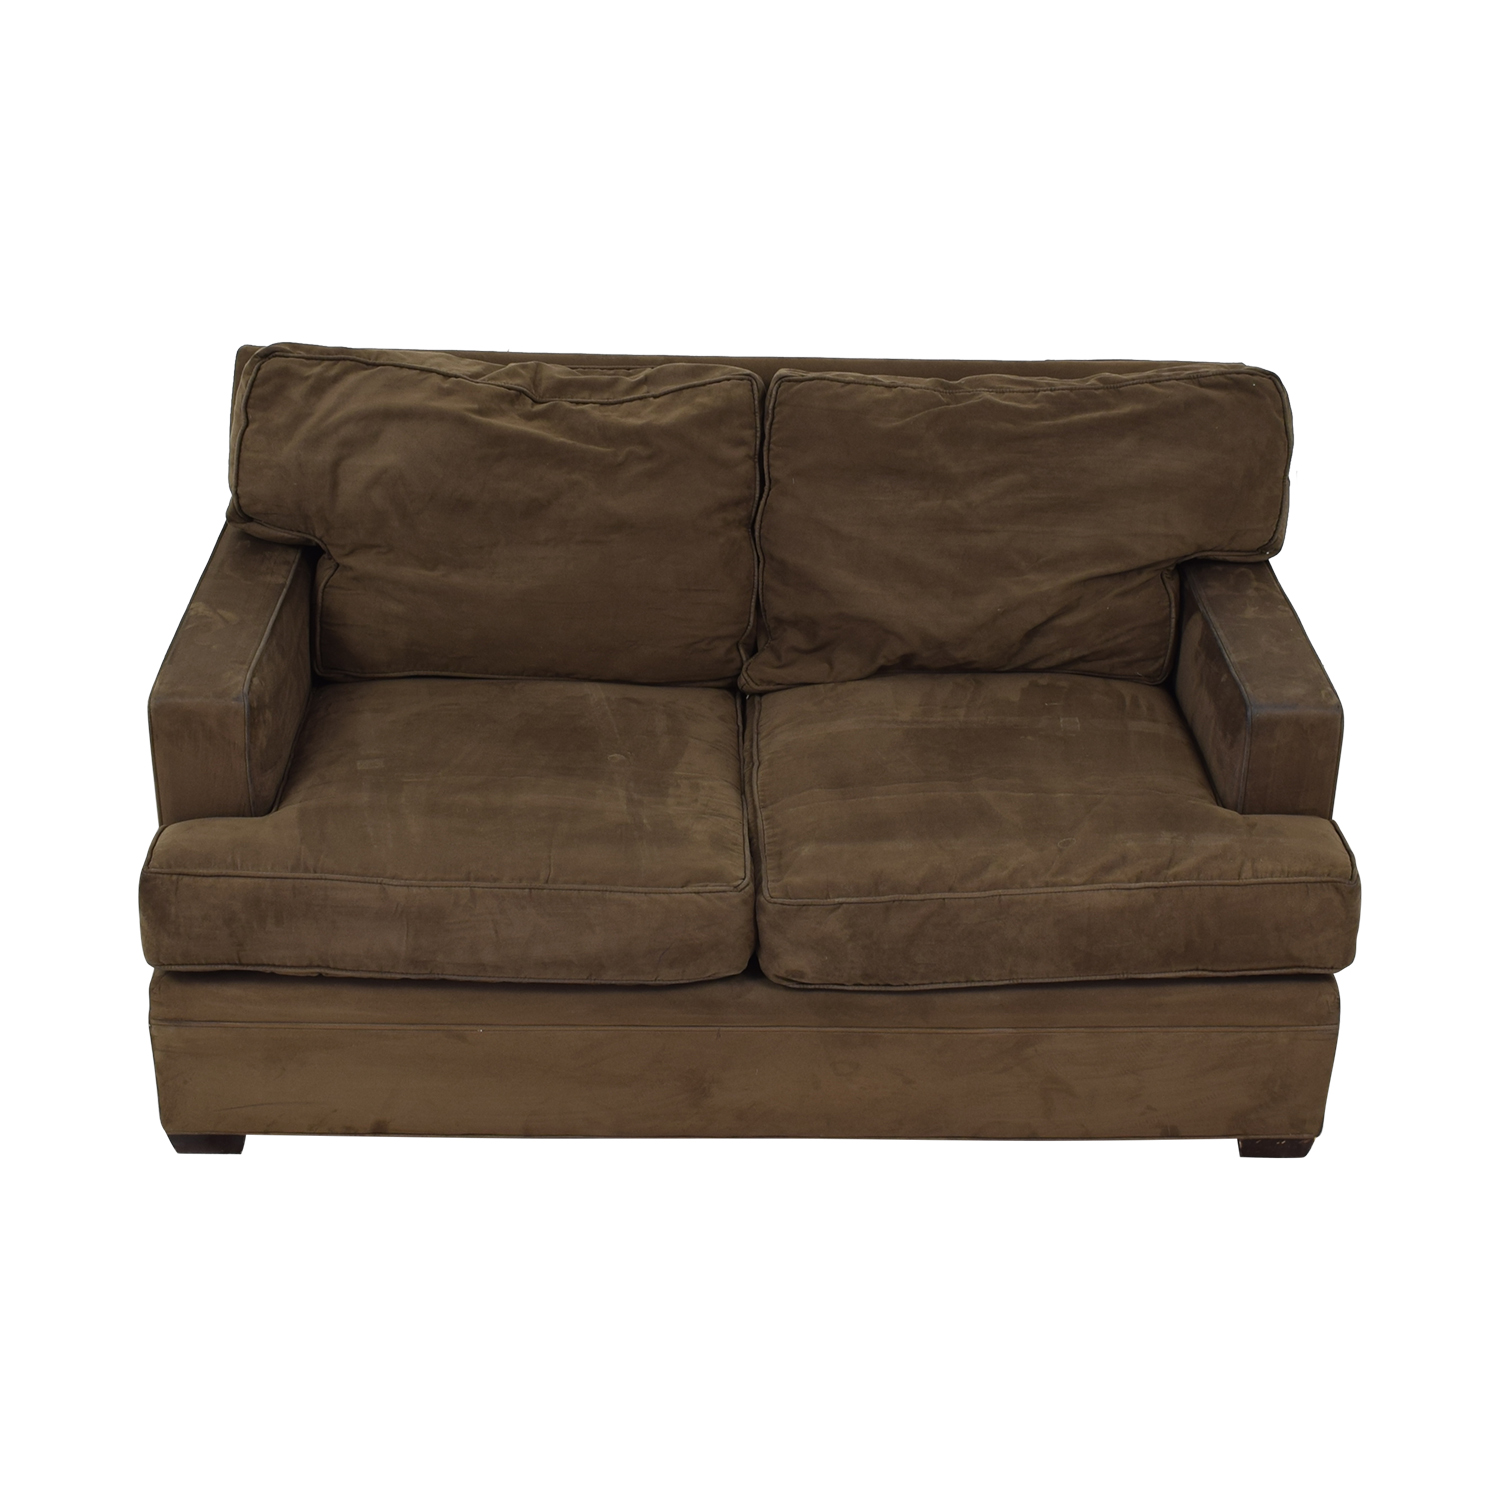 buy Crate & Barrel Brown Suede Loveseat Crate & Barrel Loveseats